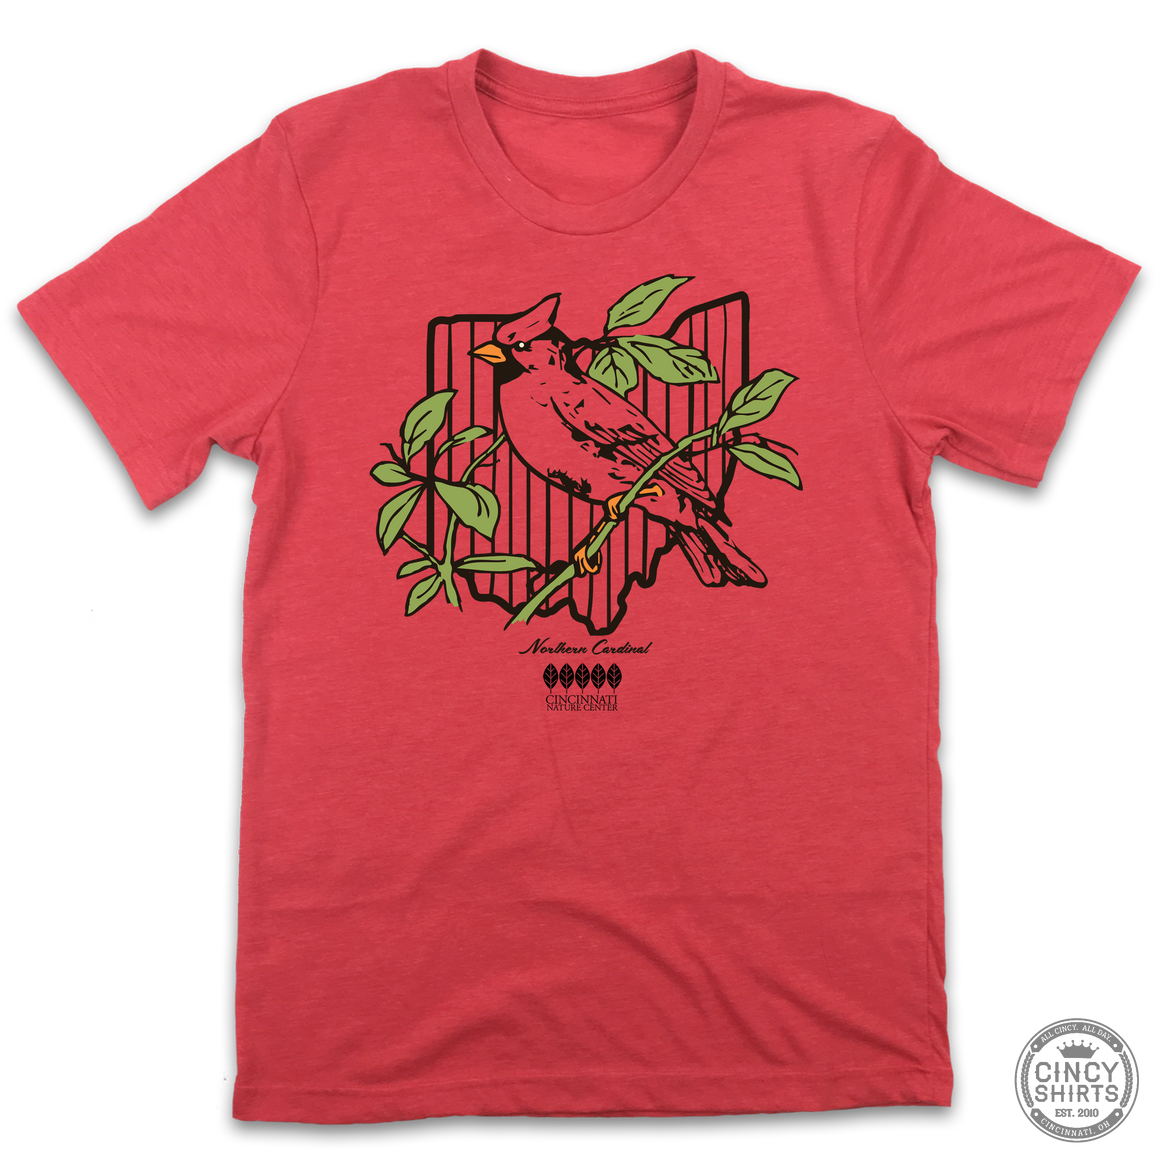 Northern Cardinal - Cincy Shirts